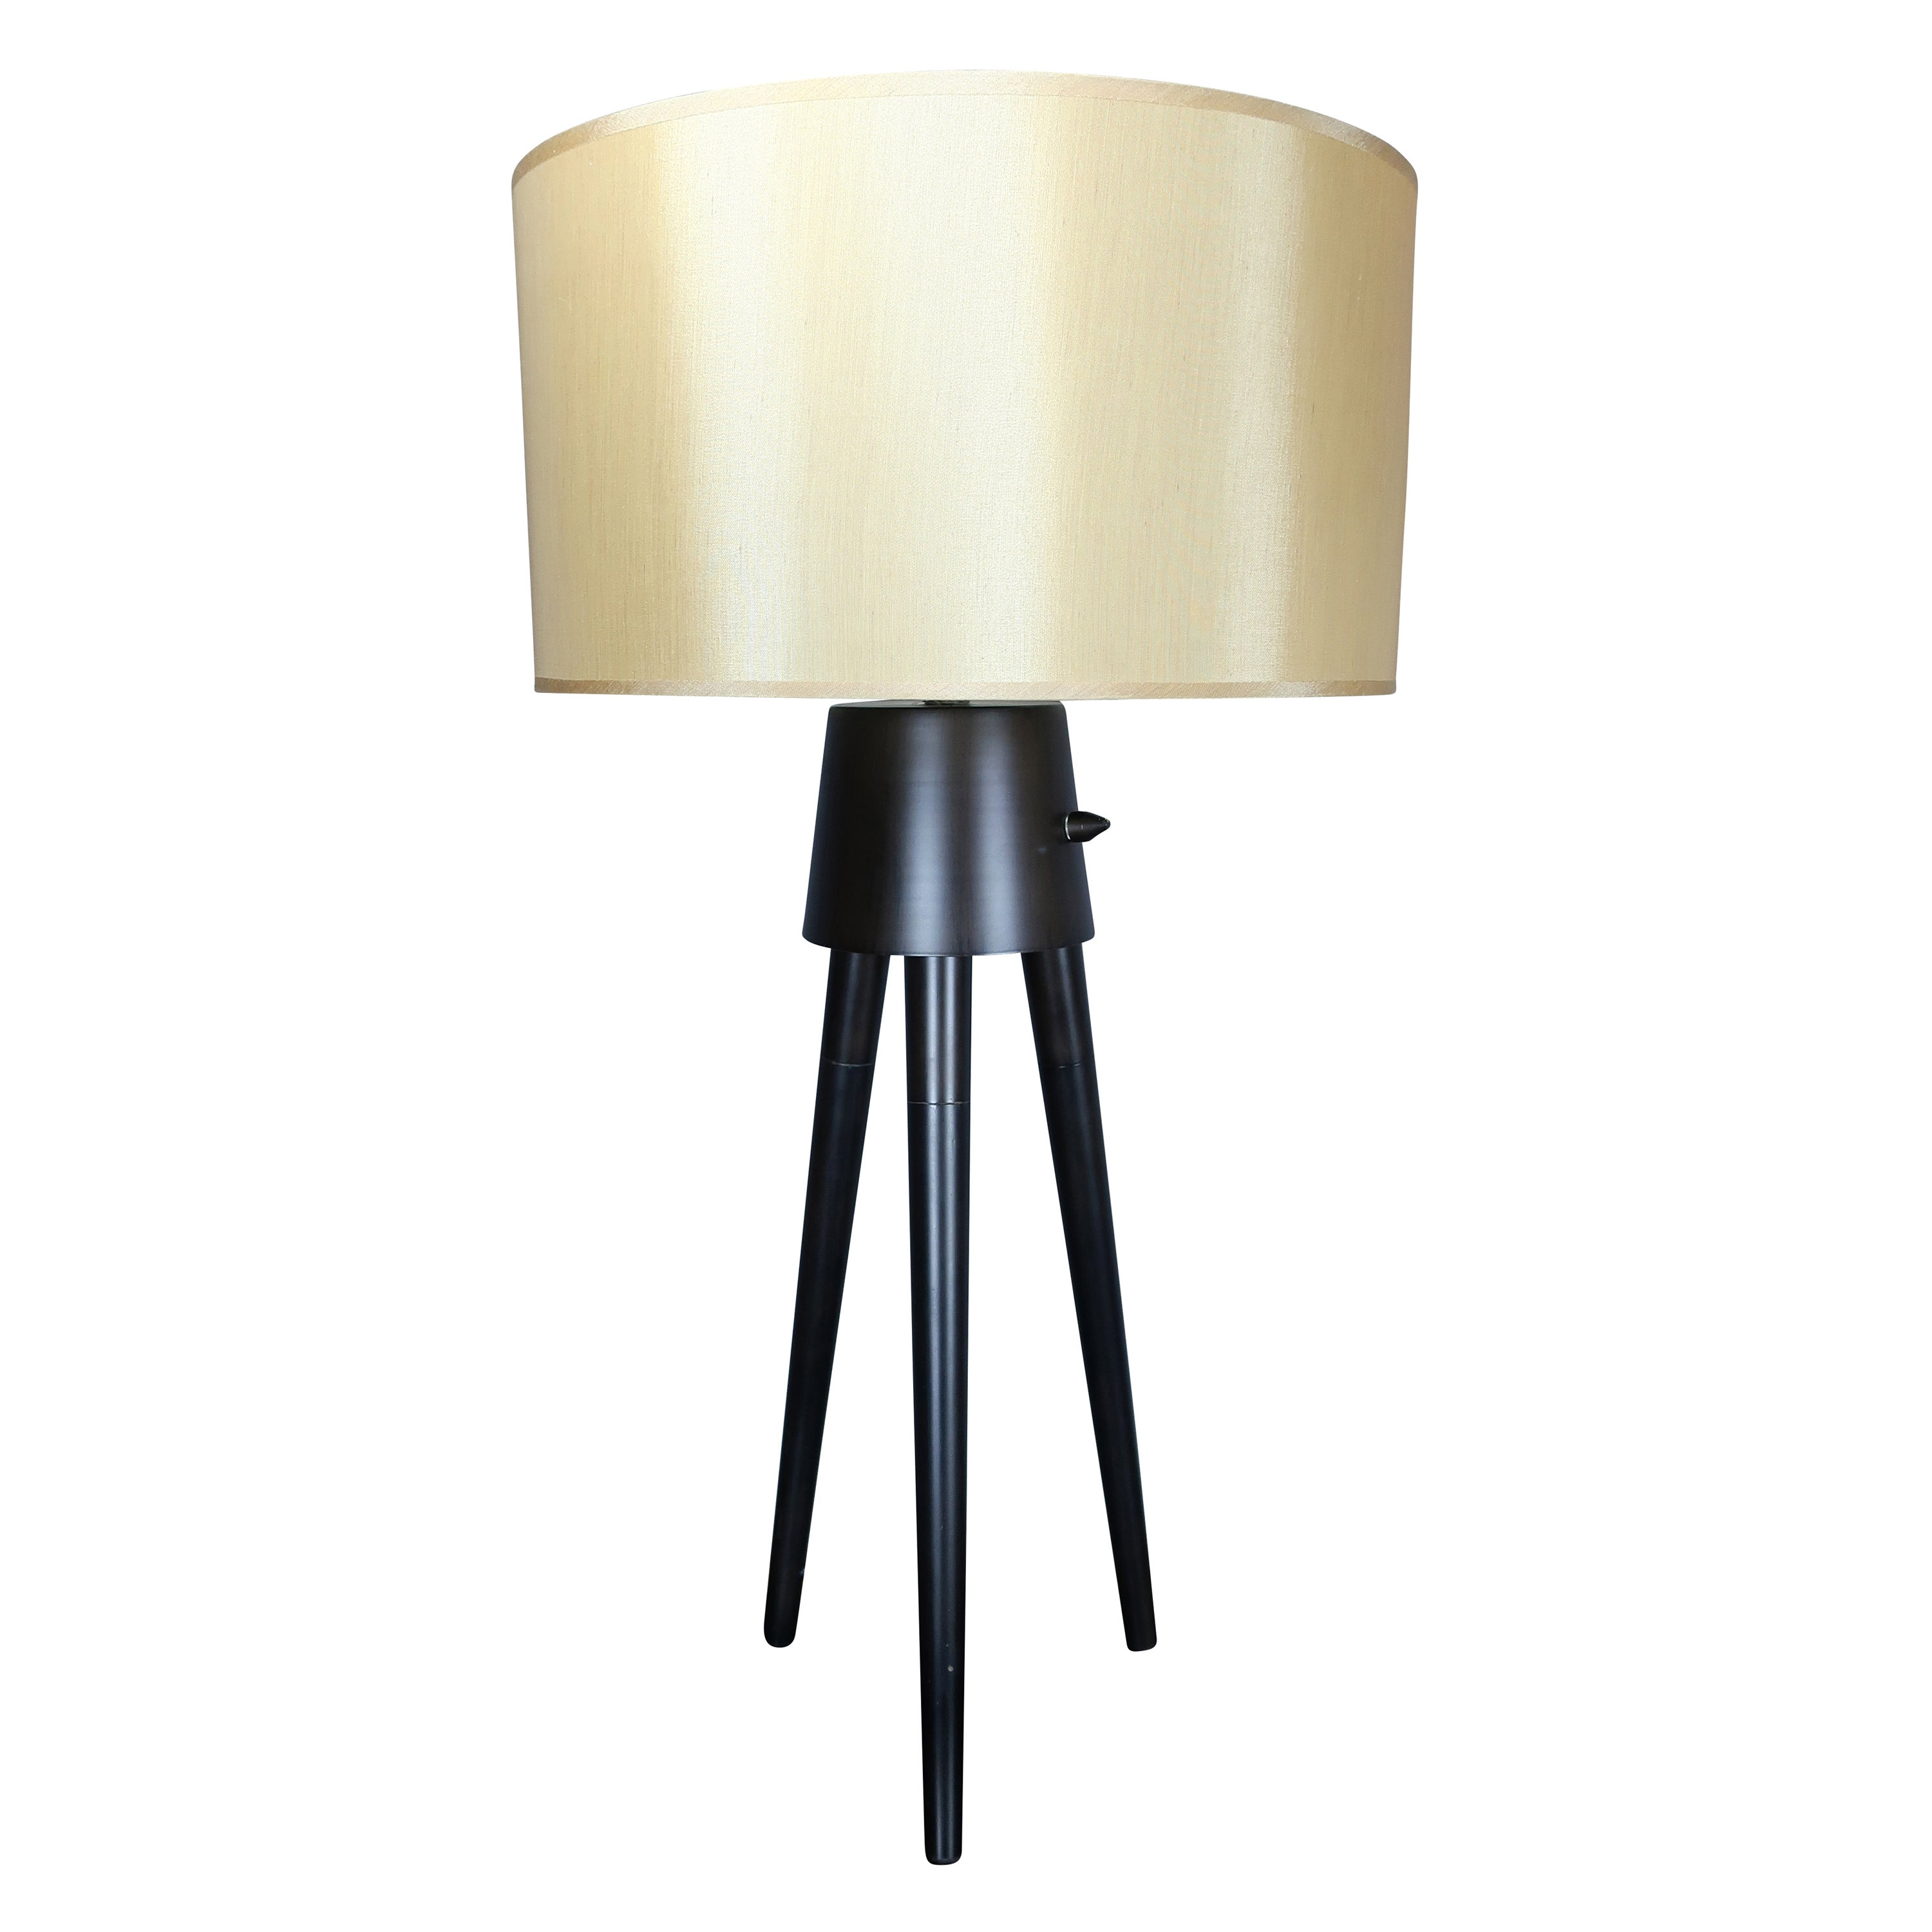 Pair of Midcentury Style Black Tripod Lamps with Champagne Shades